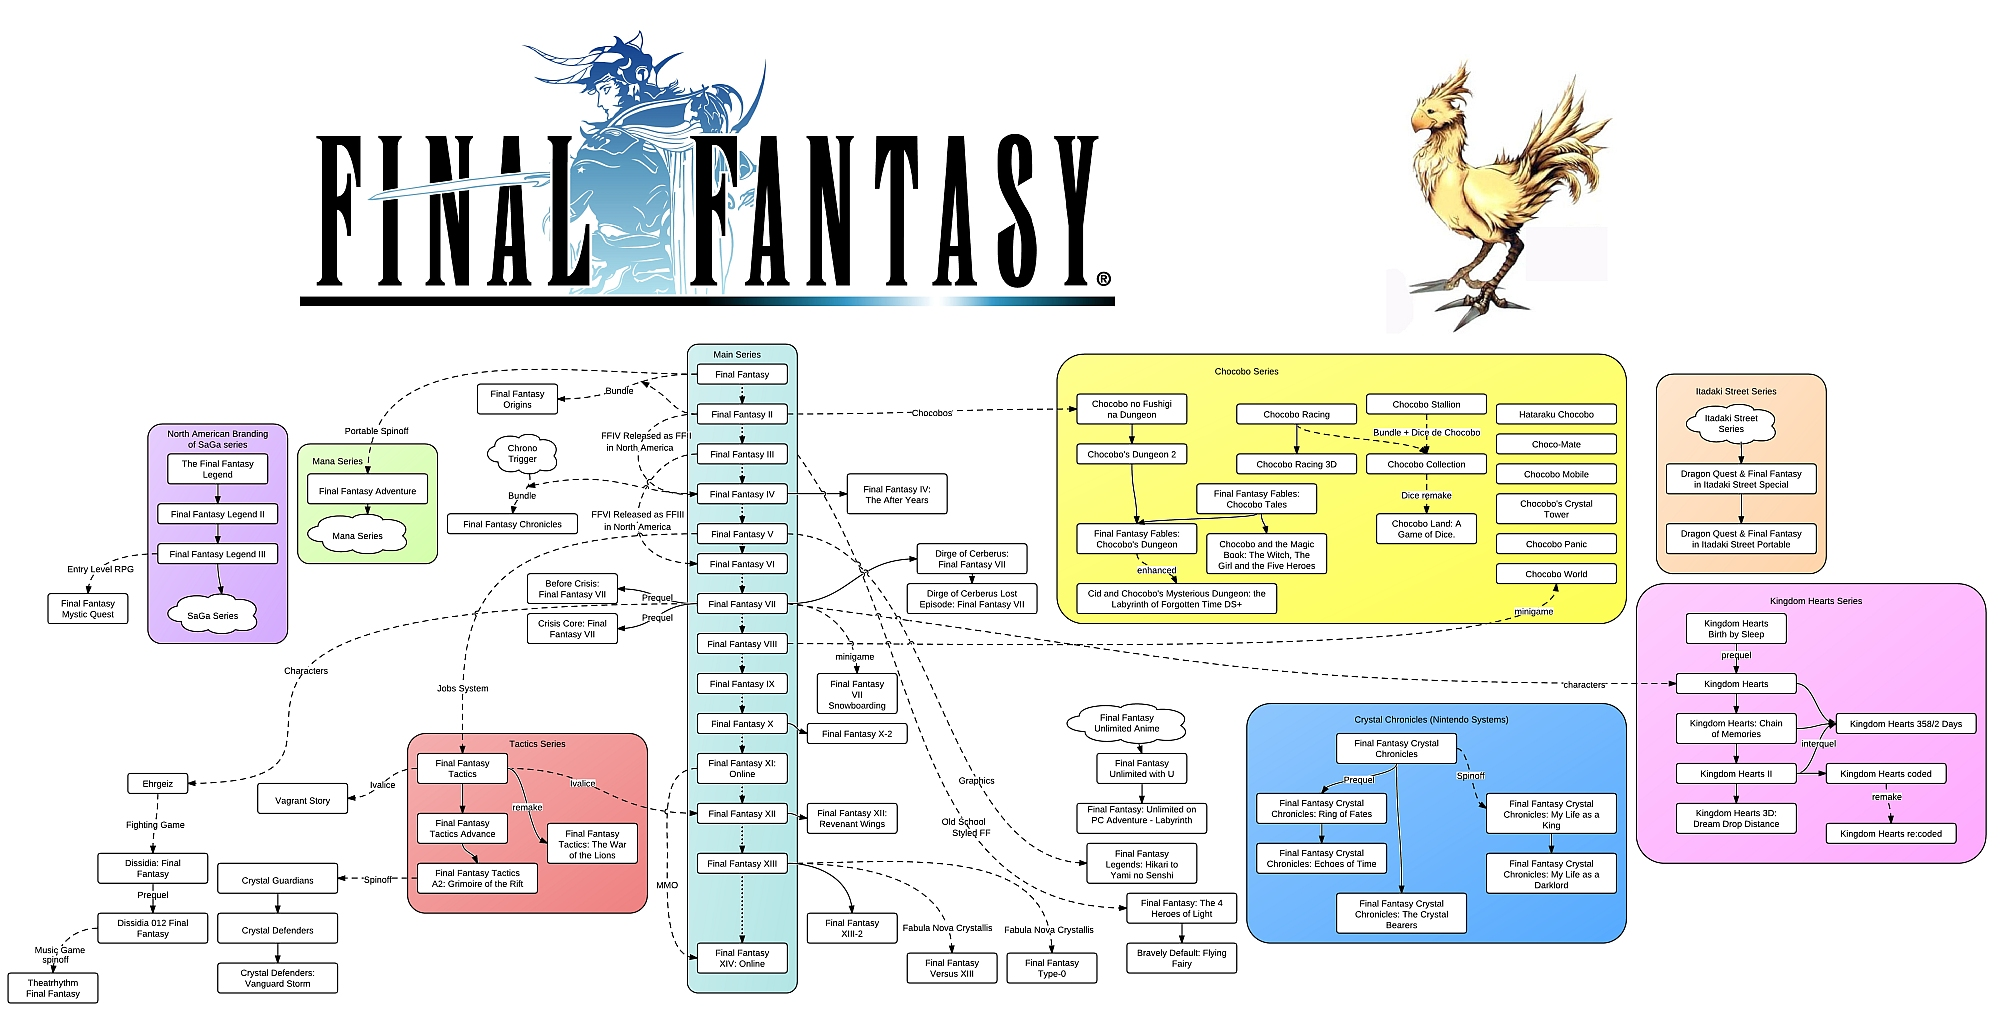 Final fantasy flowchart all things final fantasy if you had clicked flowchart you nvjuhfo Choice Image